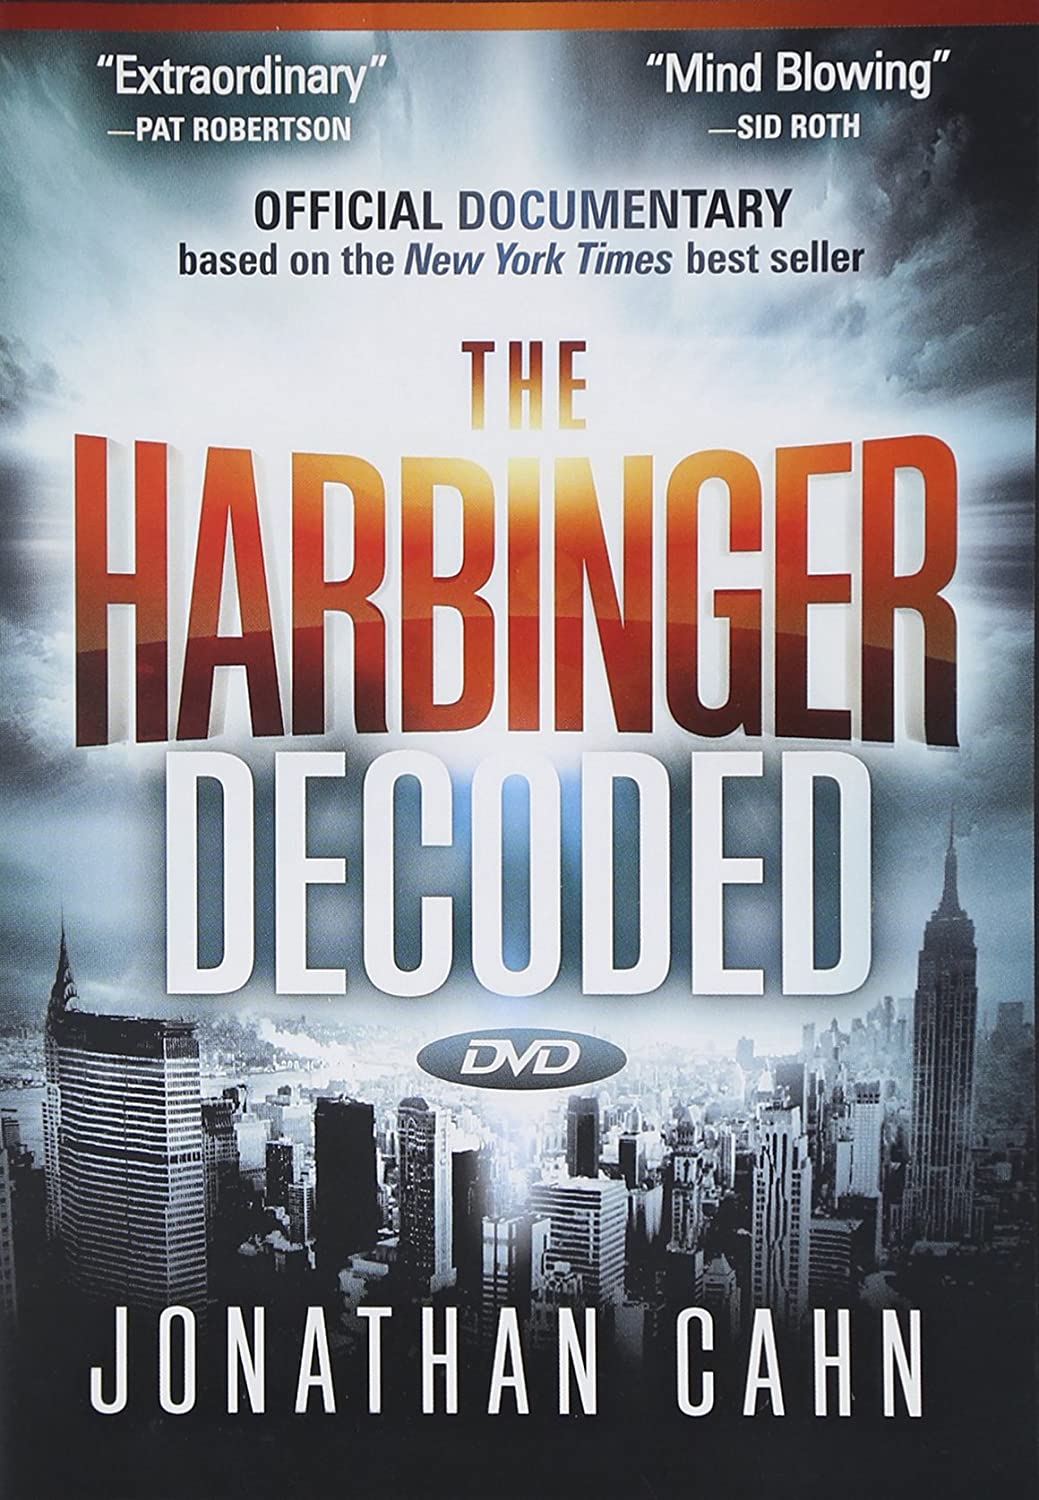 Amazon the harbinger decoded jonathan cahn nathan todd sims amazon the harbinger decoded jonathan cahn nathan todd sims movies tv malvernweather Gallery